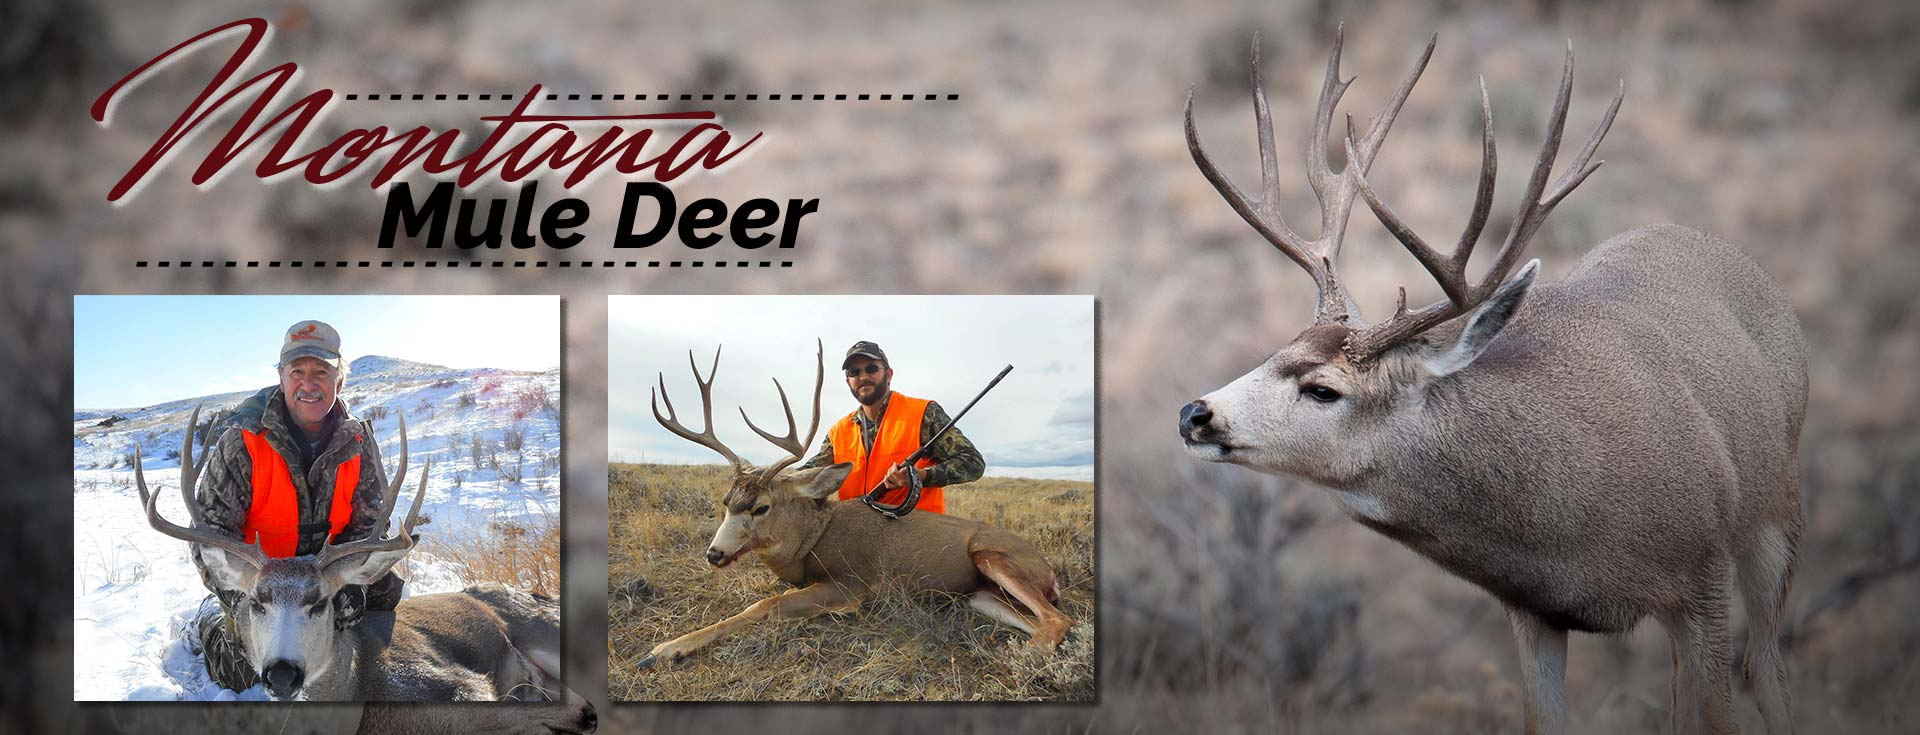 Montana Mule Deer Hunting Guide & Outfitter